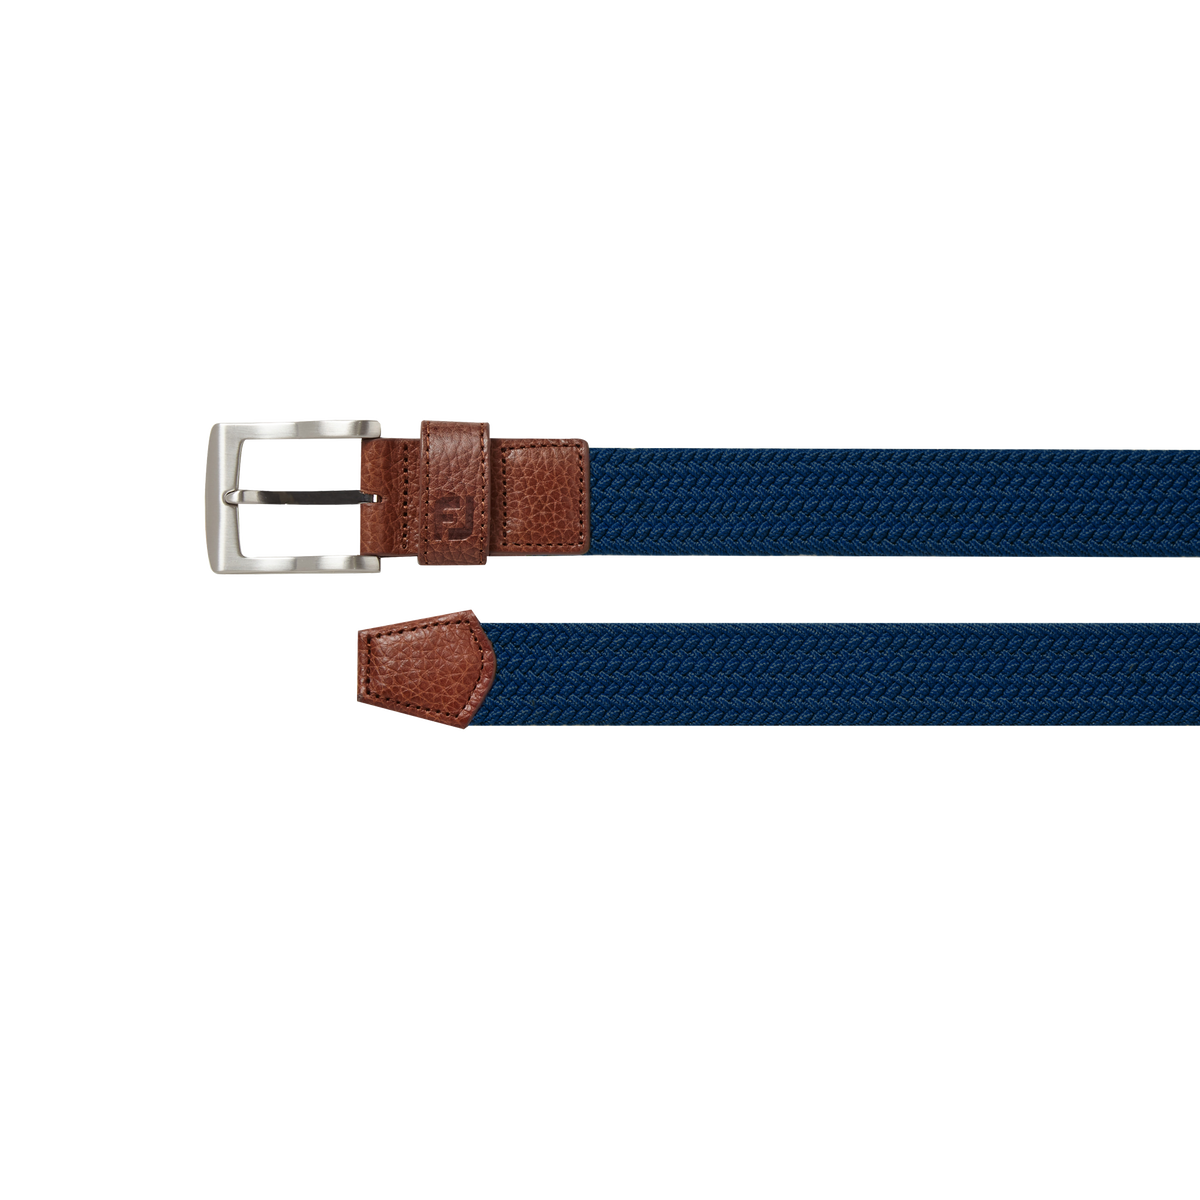 FJ Braided Golf Belt